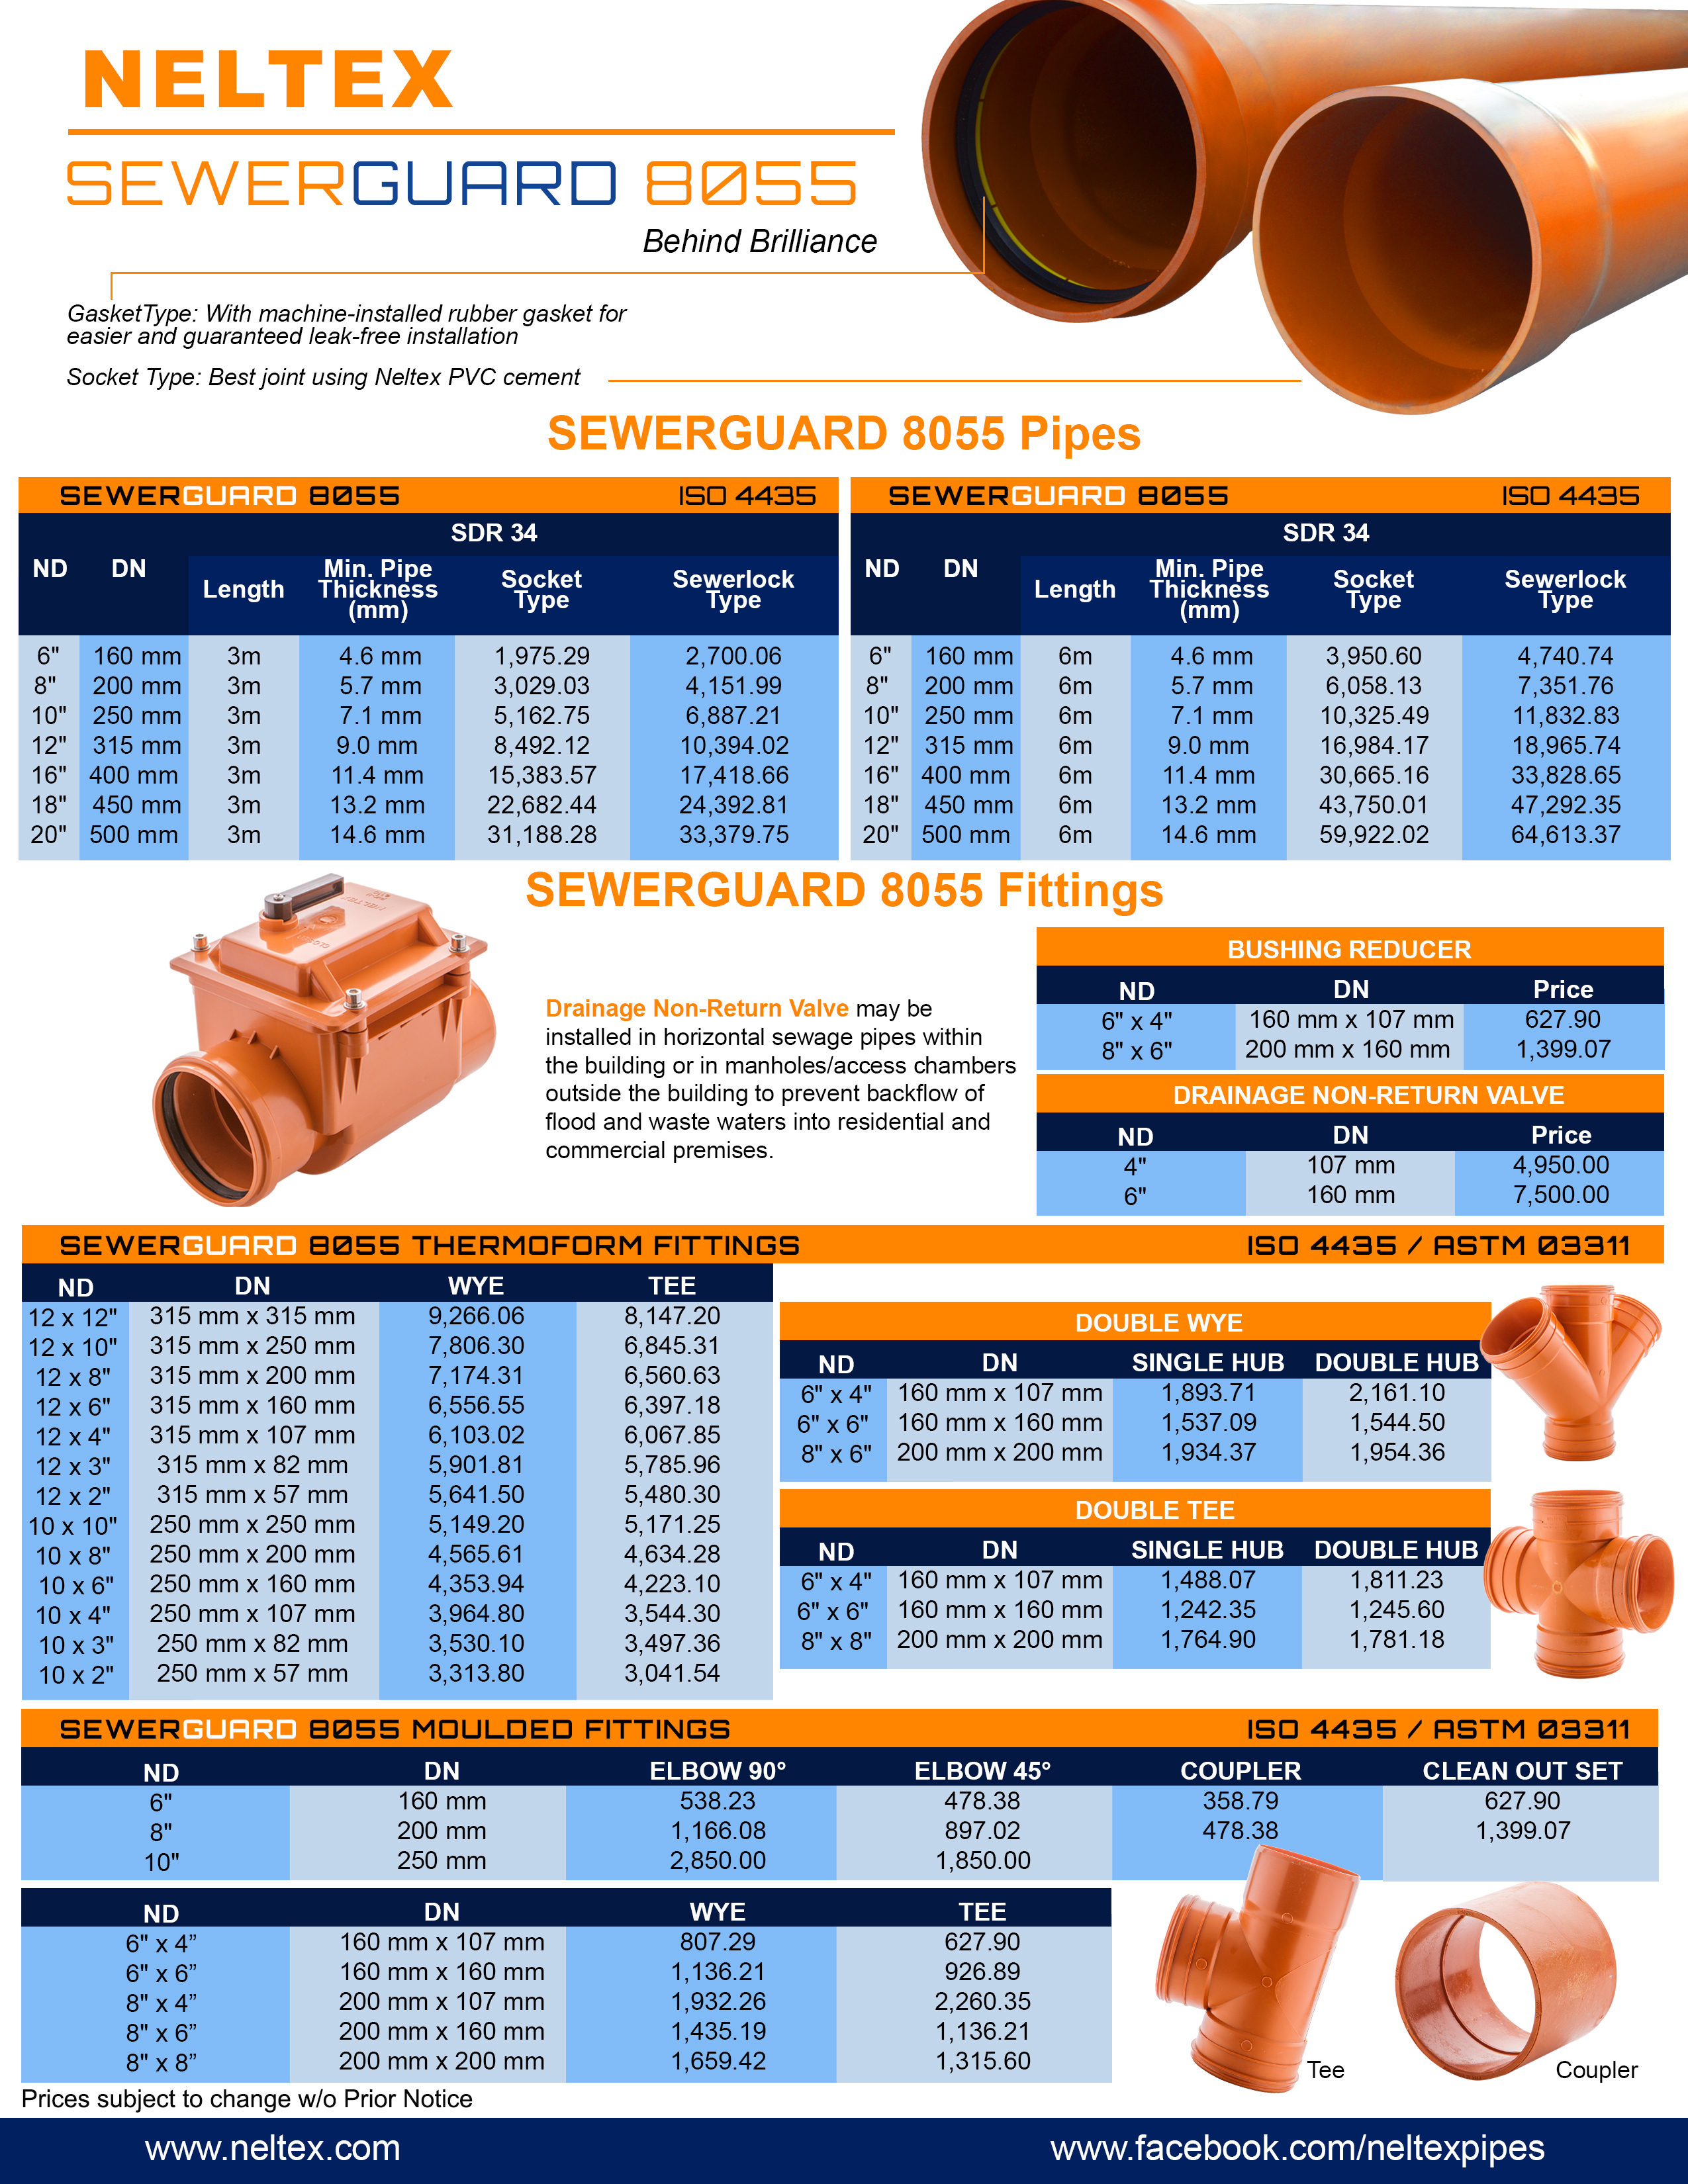 Neltex Sewerguard Pricelist 2015.jpg  sc 1 st  Neltex : cost of pvc pipes - www.happyfamilyinstitute.com